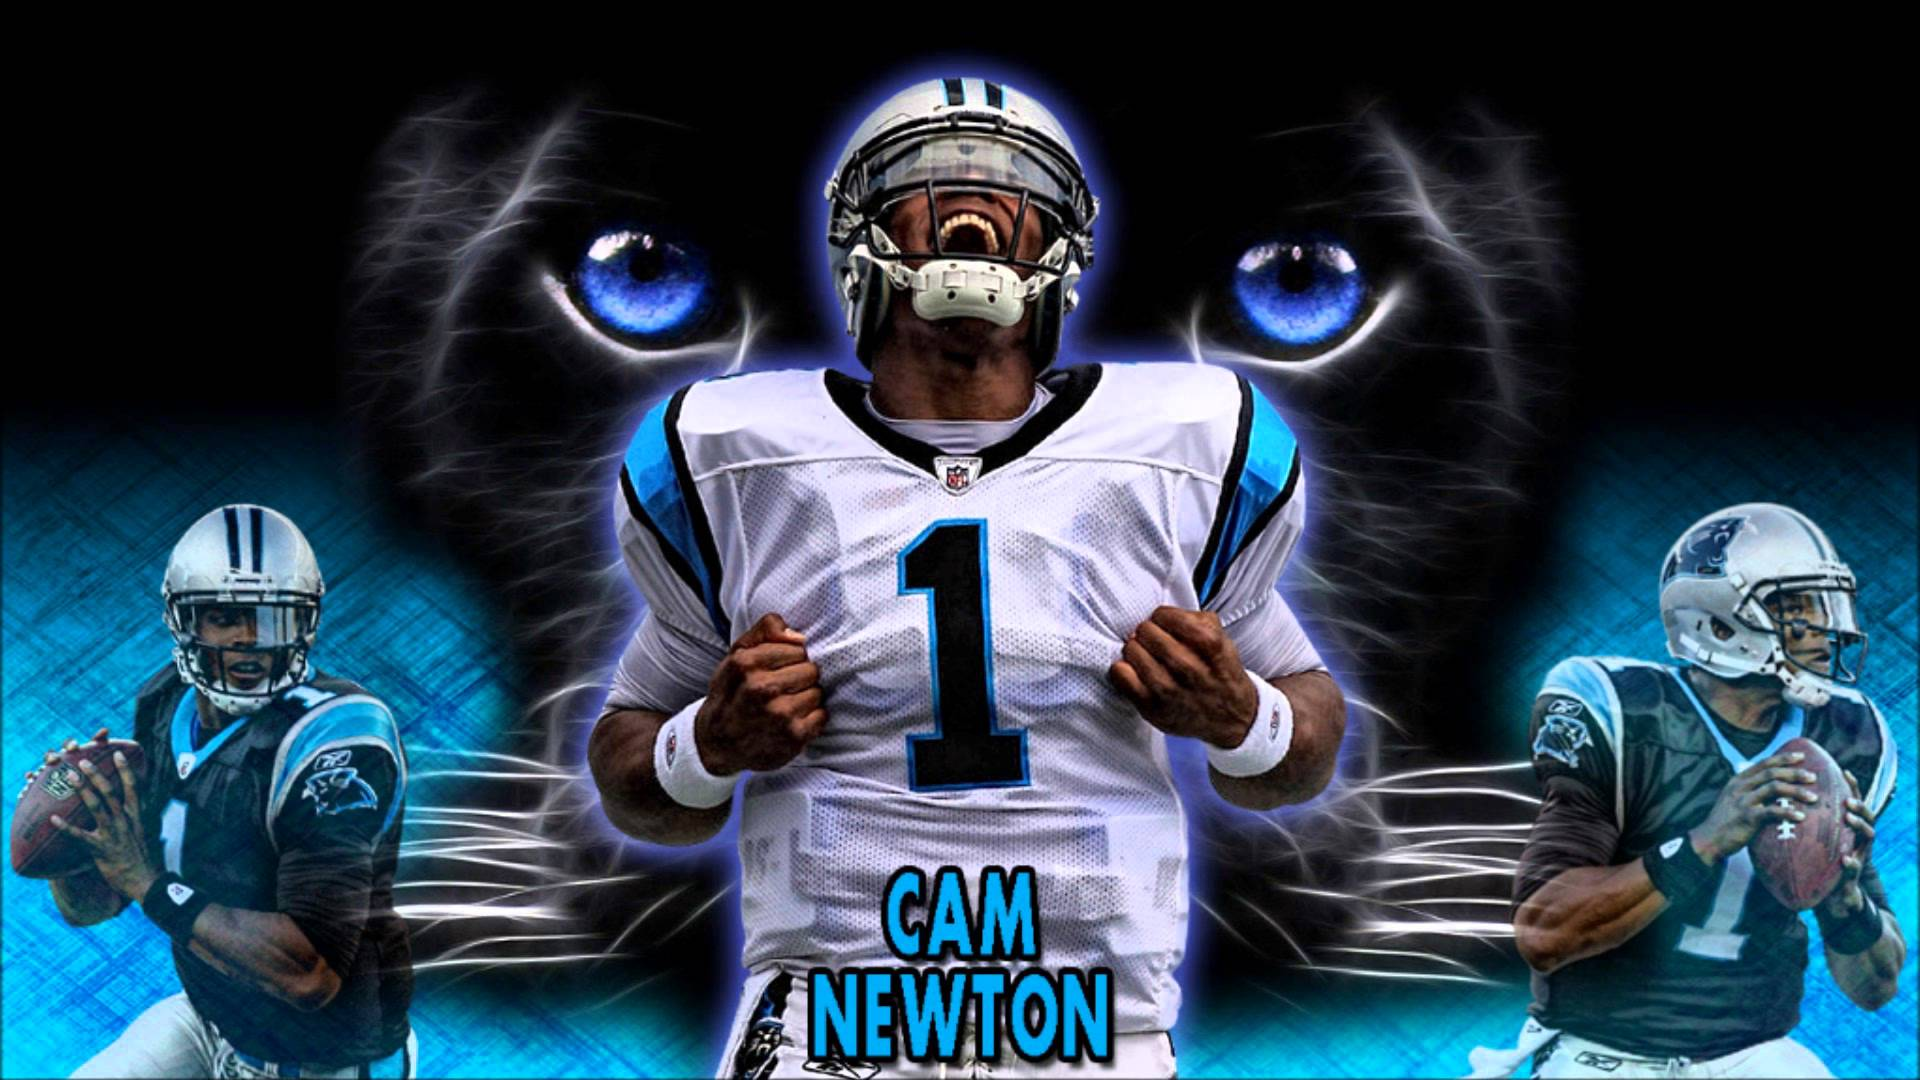 Cam Newton Wallpapers 2